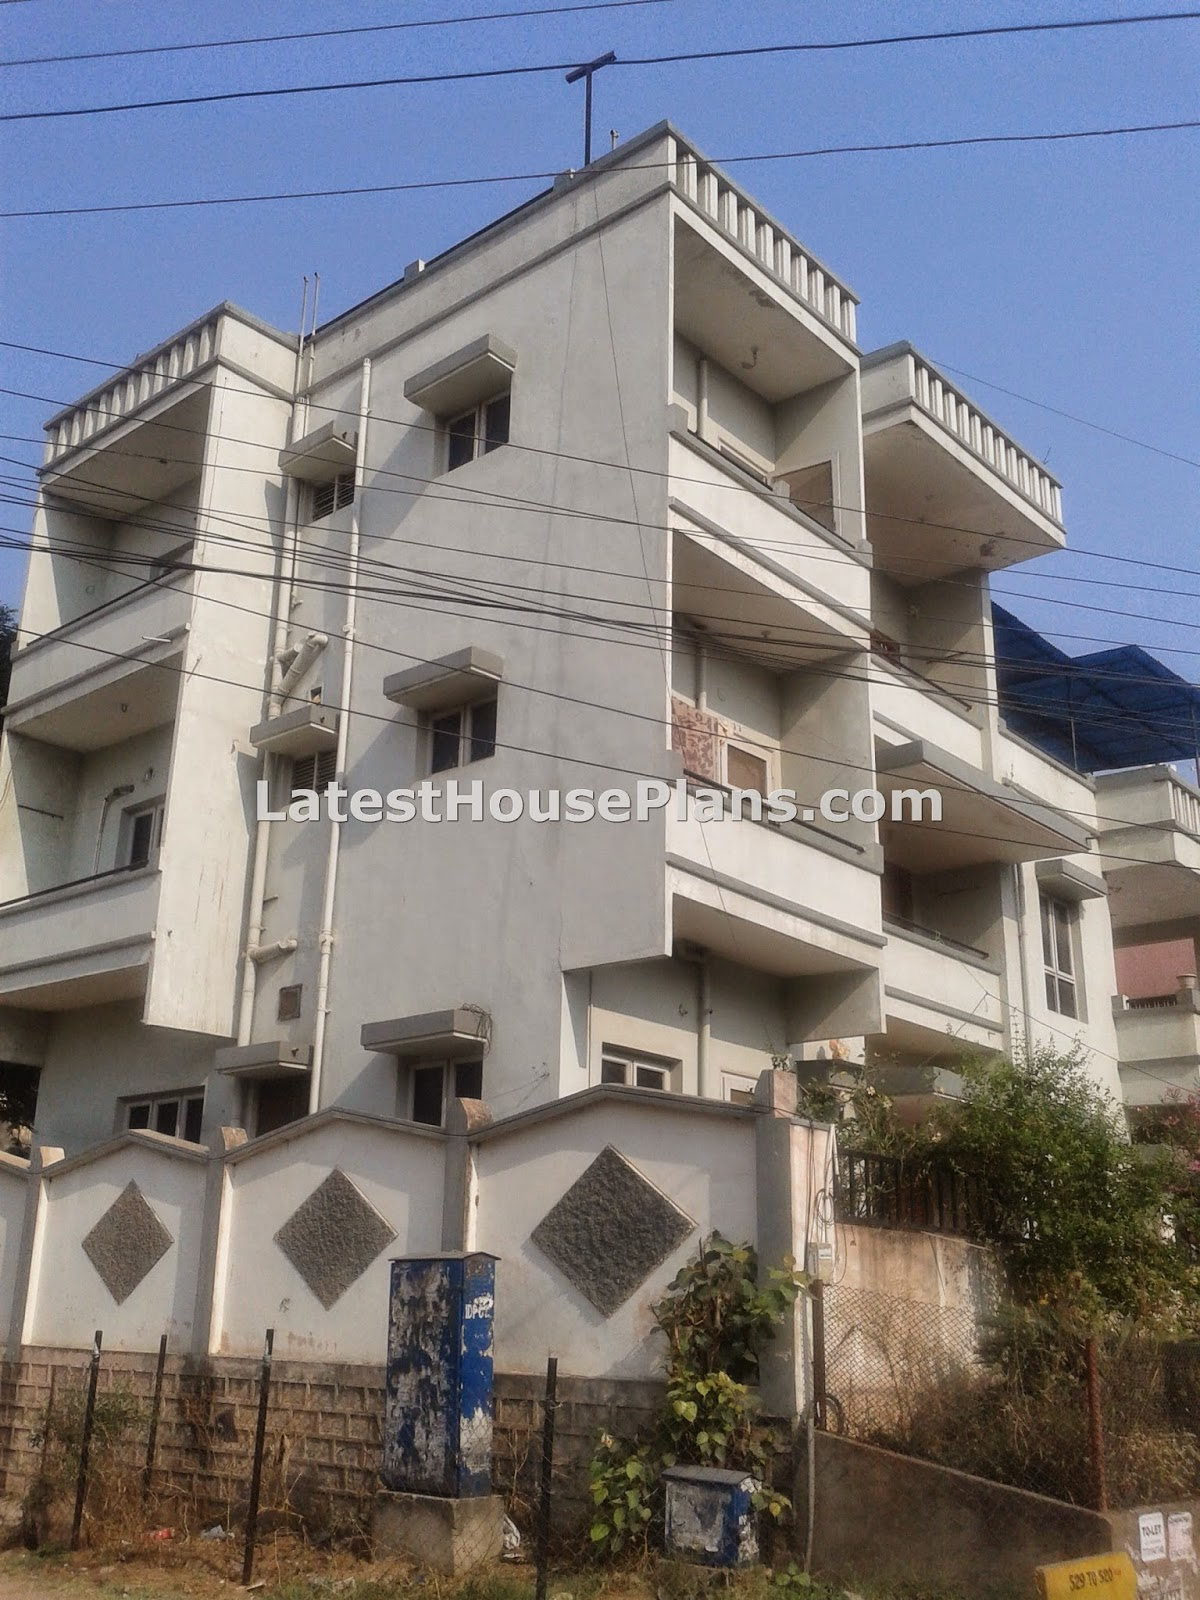 Andhra pradesh 3 floor house elevation designs latest for 3 floor house design